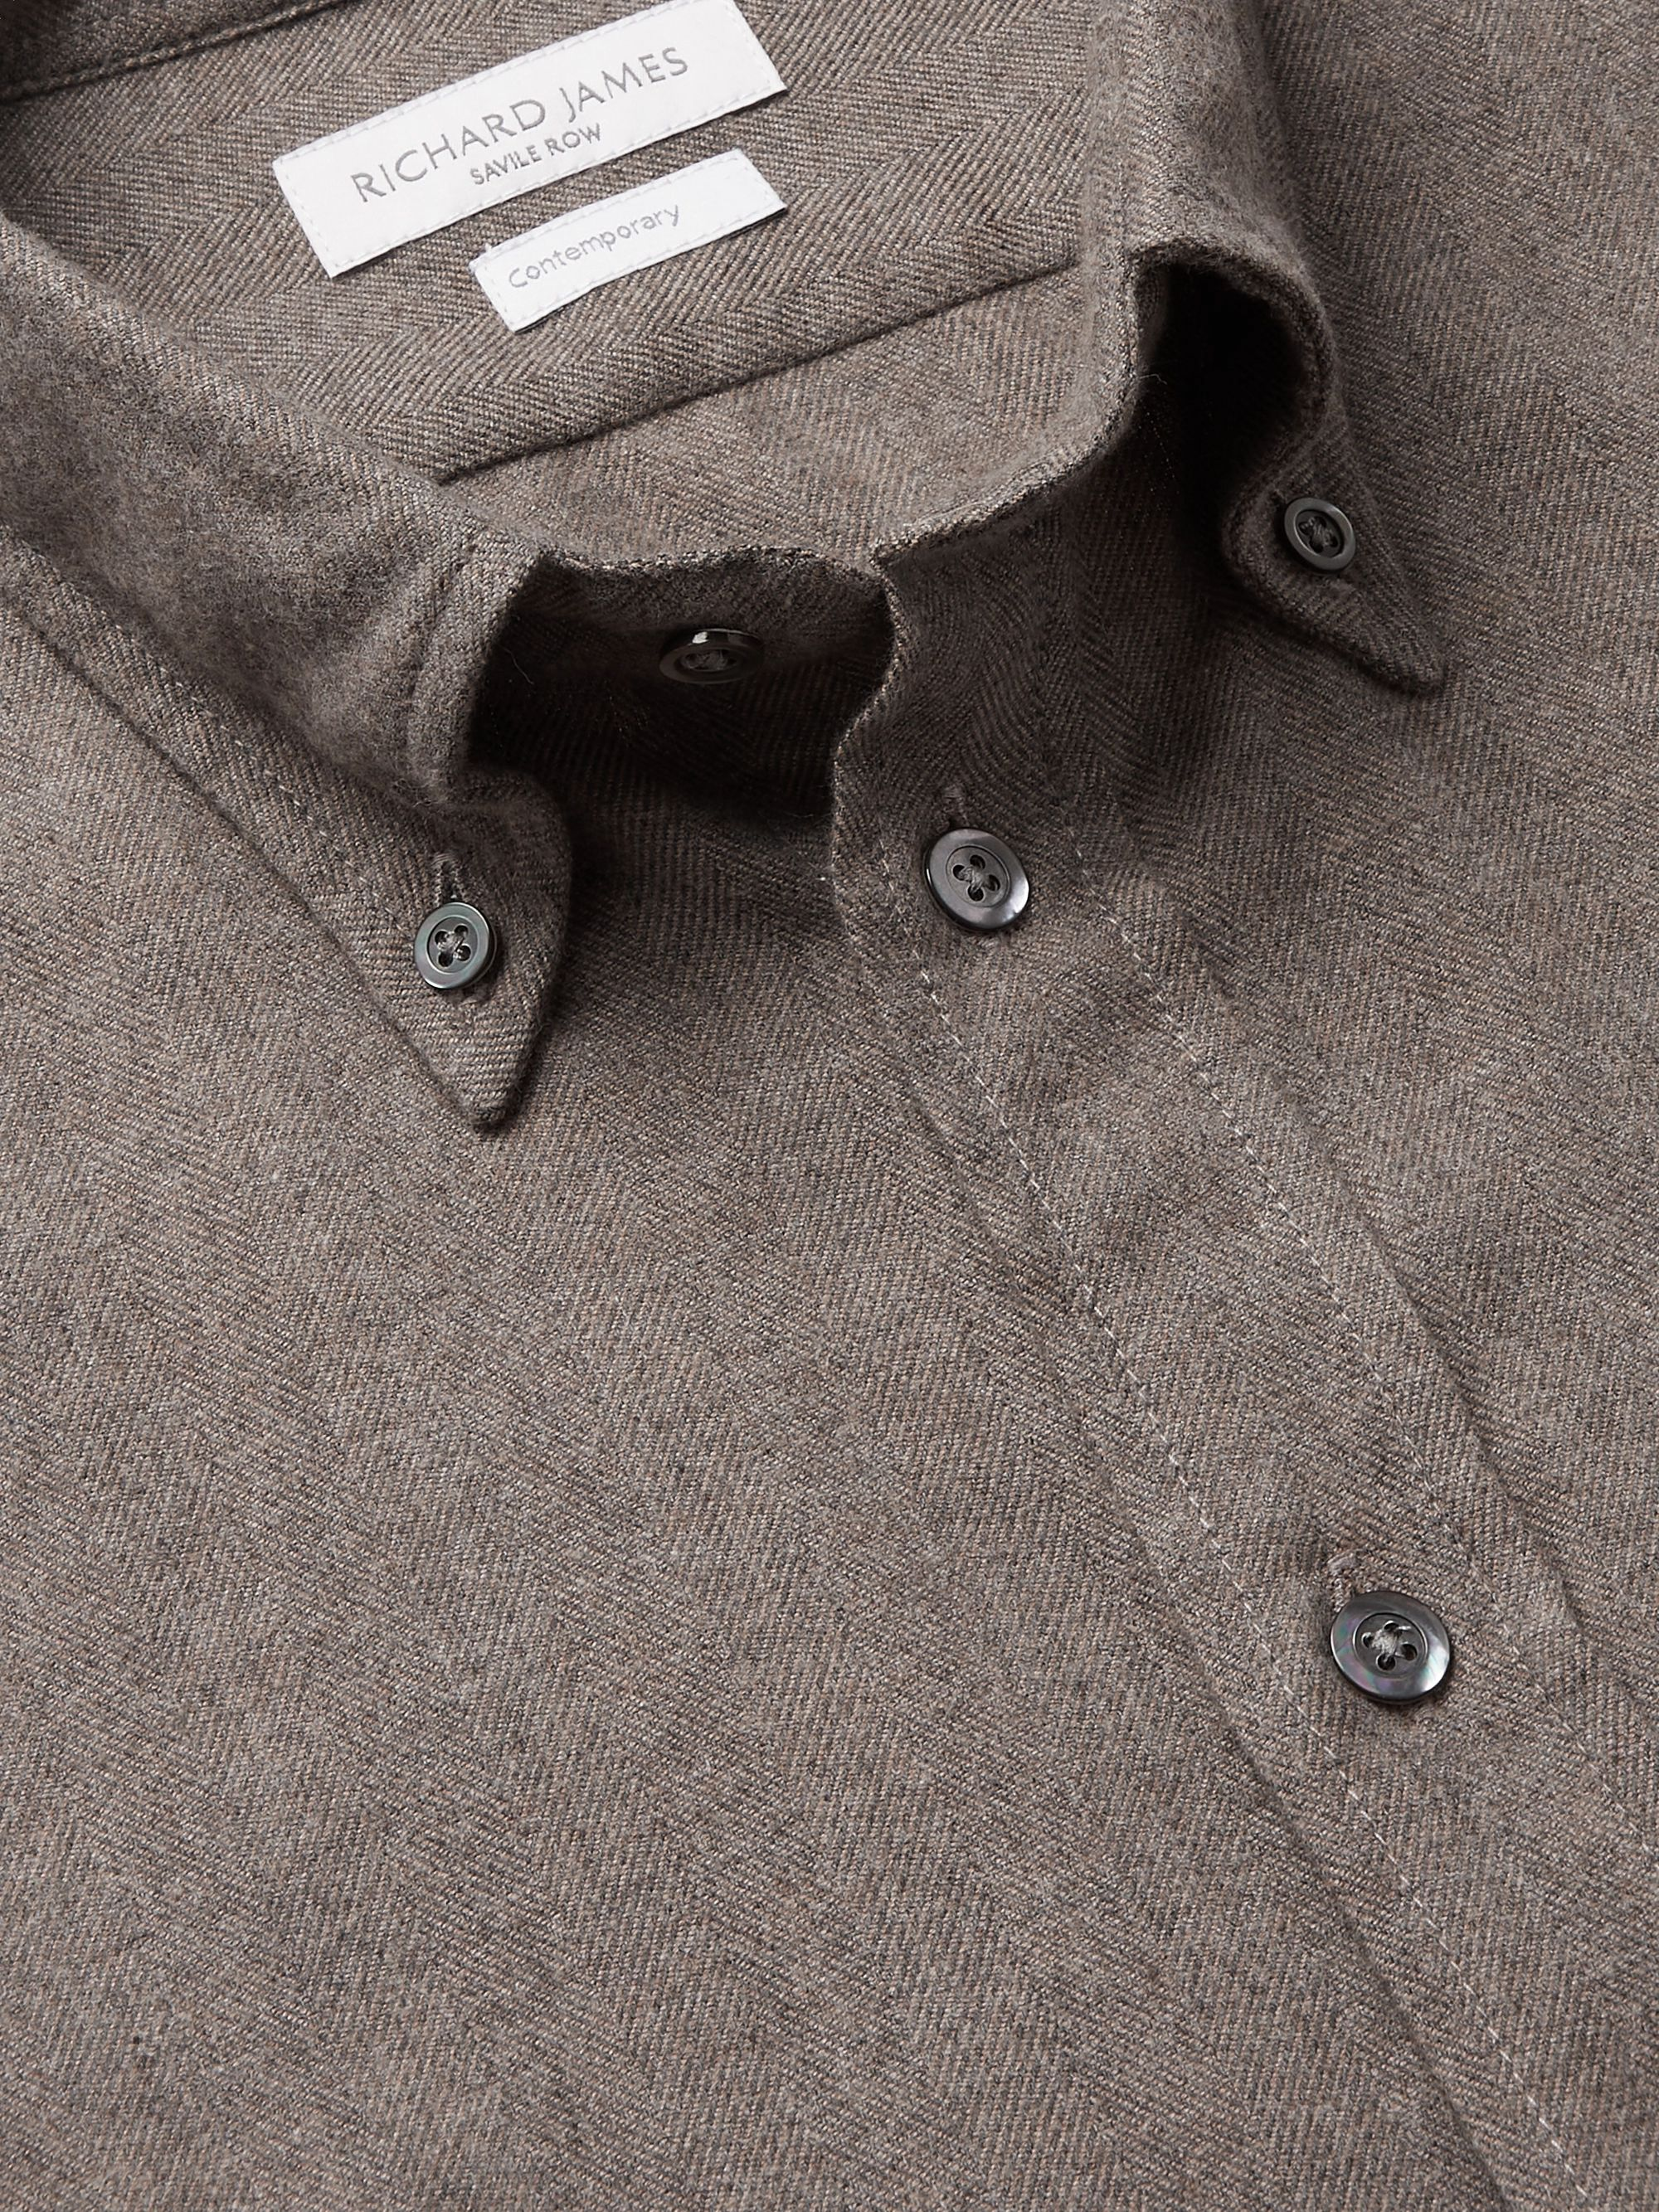 RICHARD JAMES Button-Down Collar Herringbone Brushed Cotton-Flannel Shirt